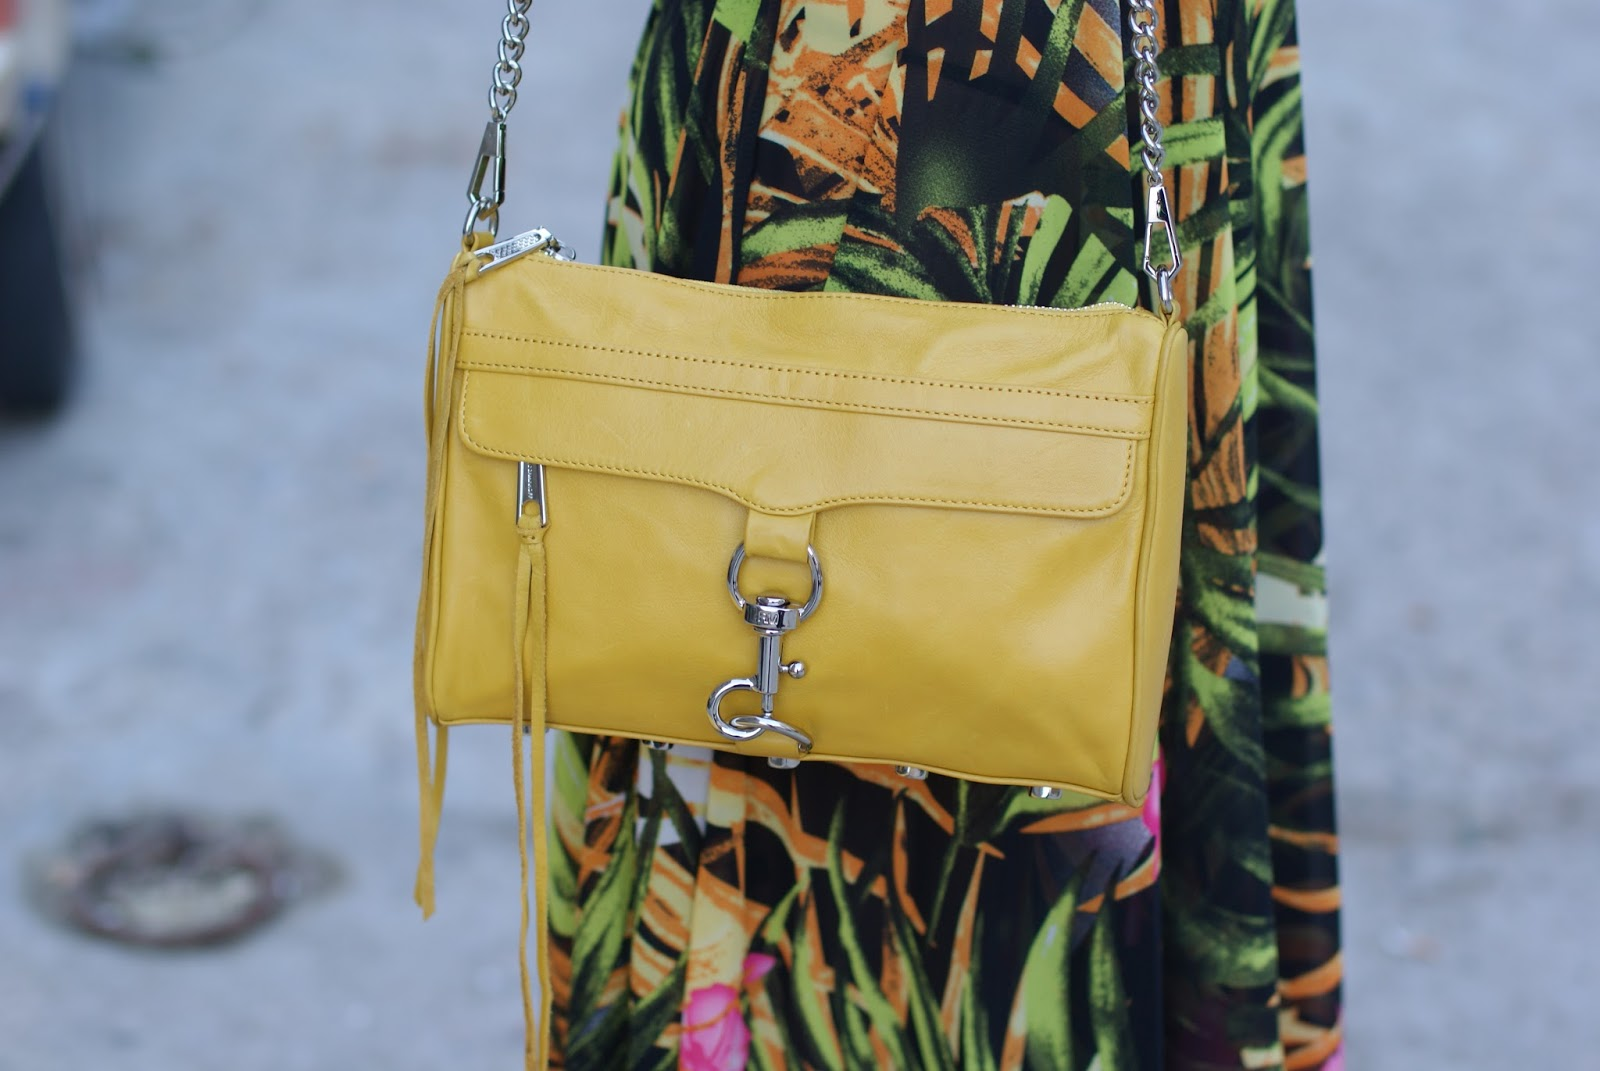 yellow mac clutch bag from Rebecca Minkoff on Fashion and Cookies fashion blog